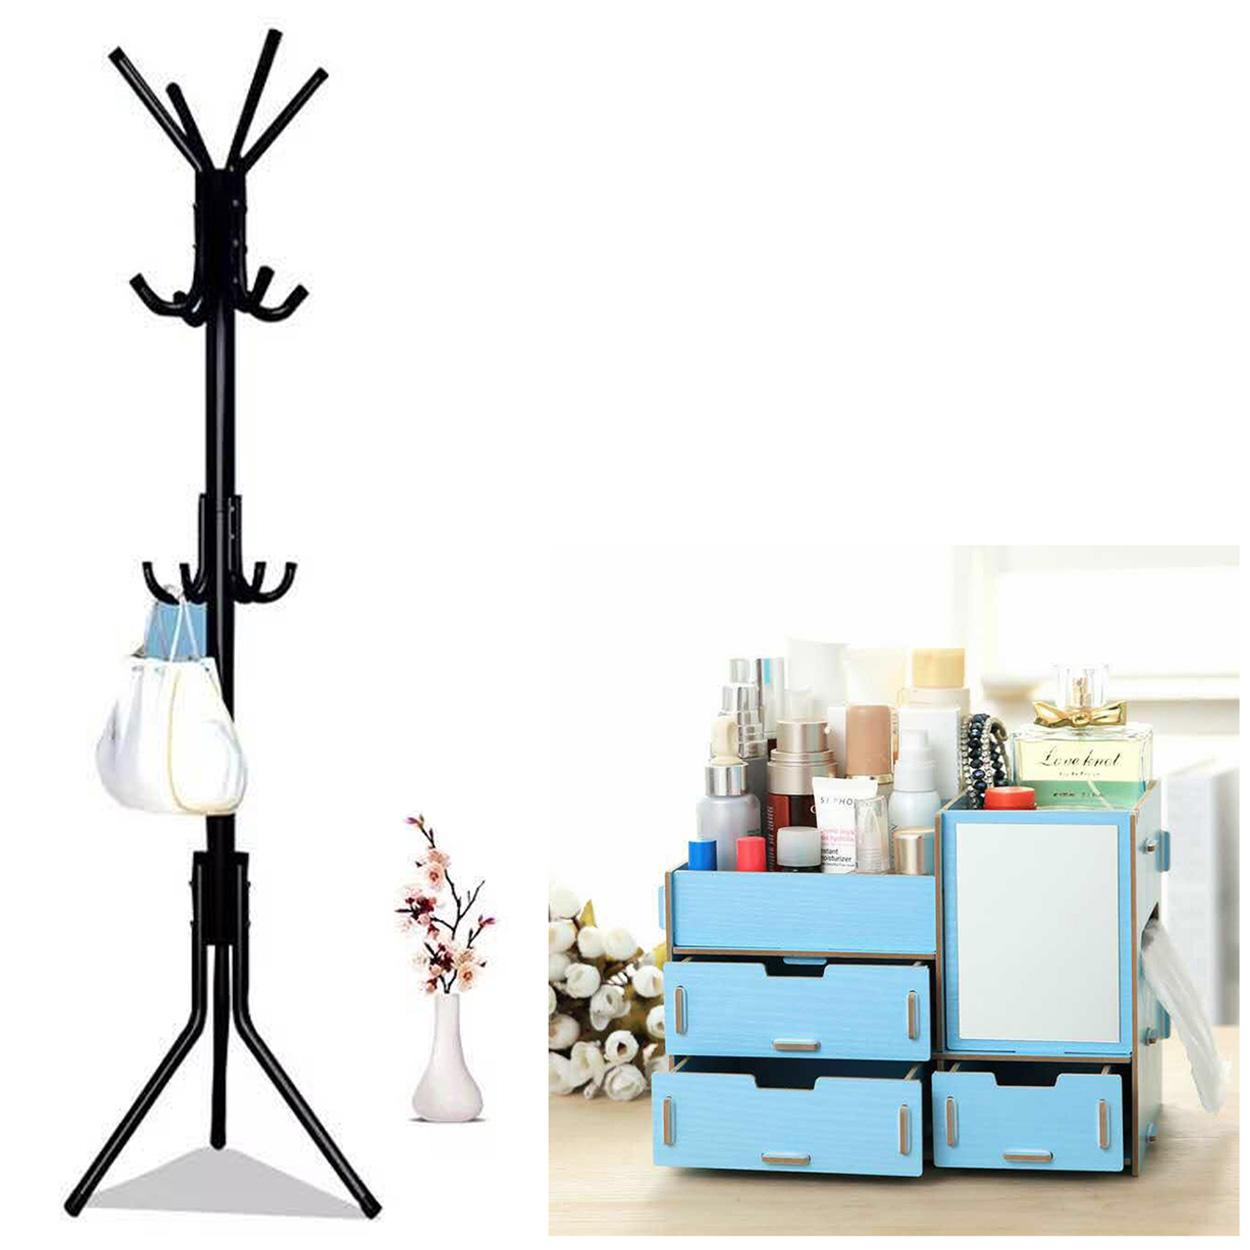 wall clothes gold i kit stand a with unique division wooden and racks tree black mounted umbrella entry cloth coat pegs rack our where starter can hanger buy holder